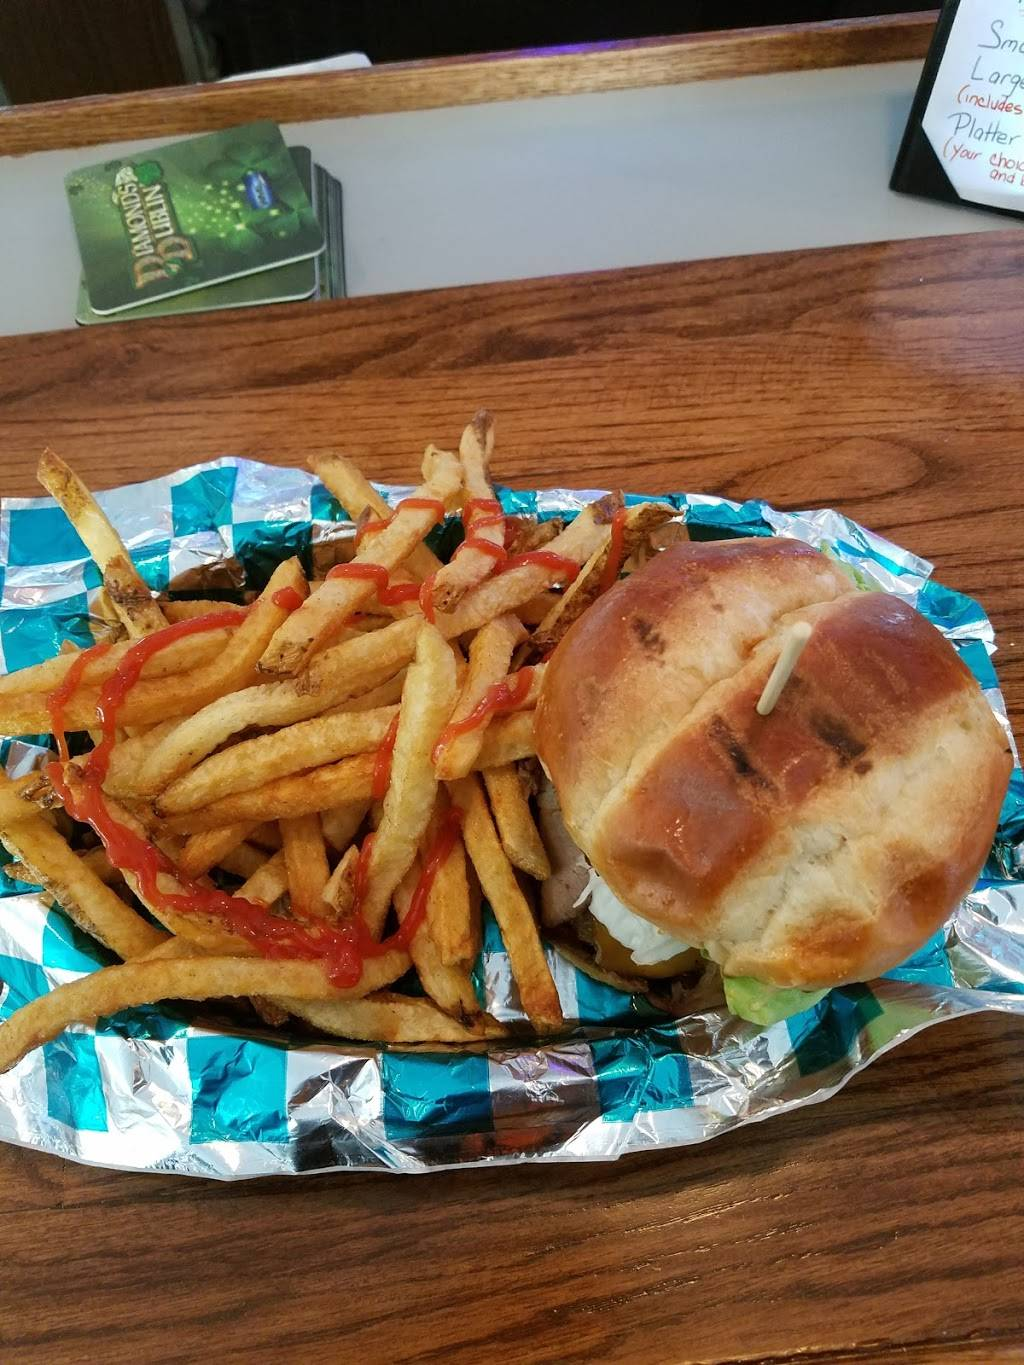 Twisted Q BBQ and Bakery | bakery | 2053 Ridge Rd, Homewood, IL 60430, USA | 7089578899 OR +1 708-957-8899